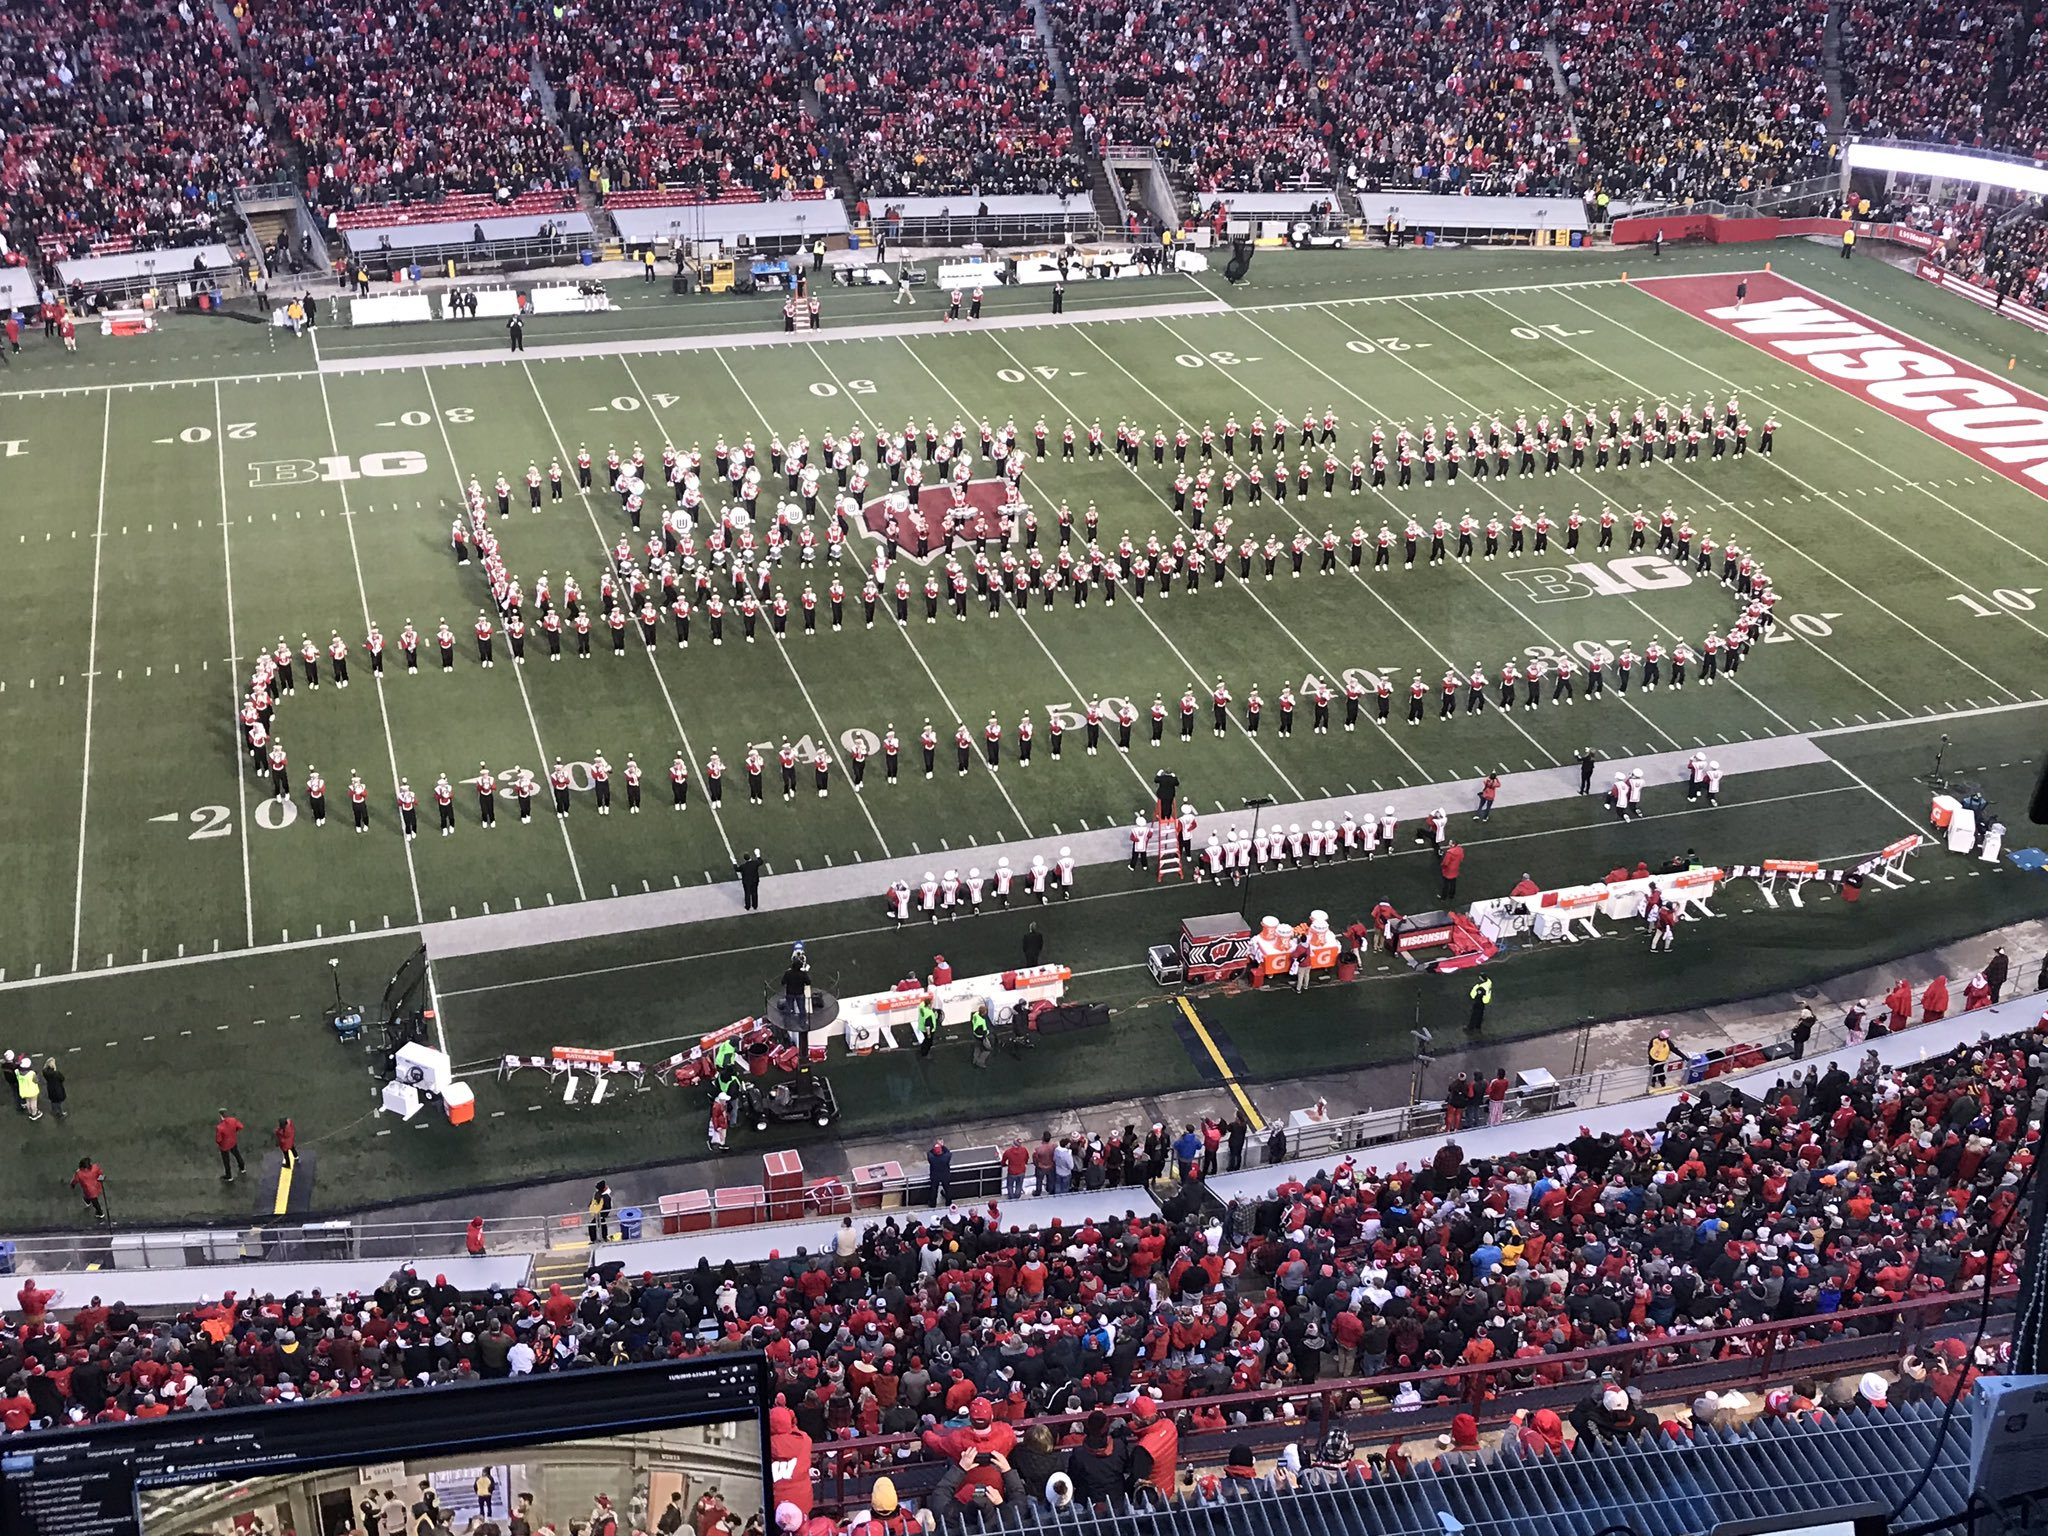 The University of Wisconsin Marching Band honors the U.S. Army during its halftime show Nov. 9, 2019. (Photo courtesy Ryan Wubben)